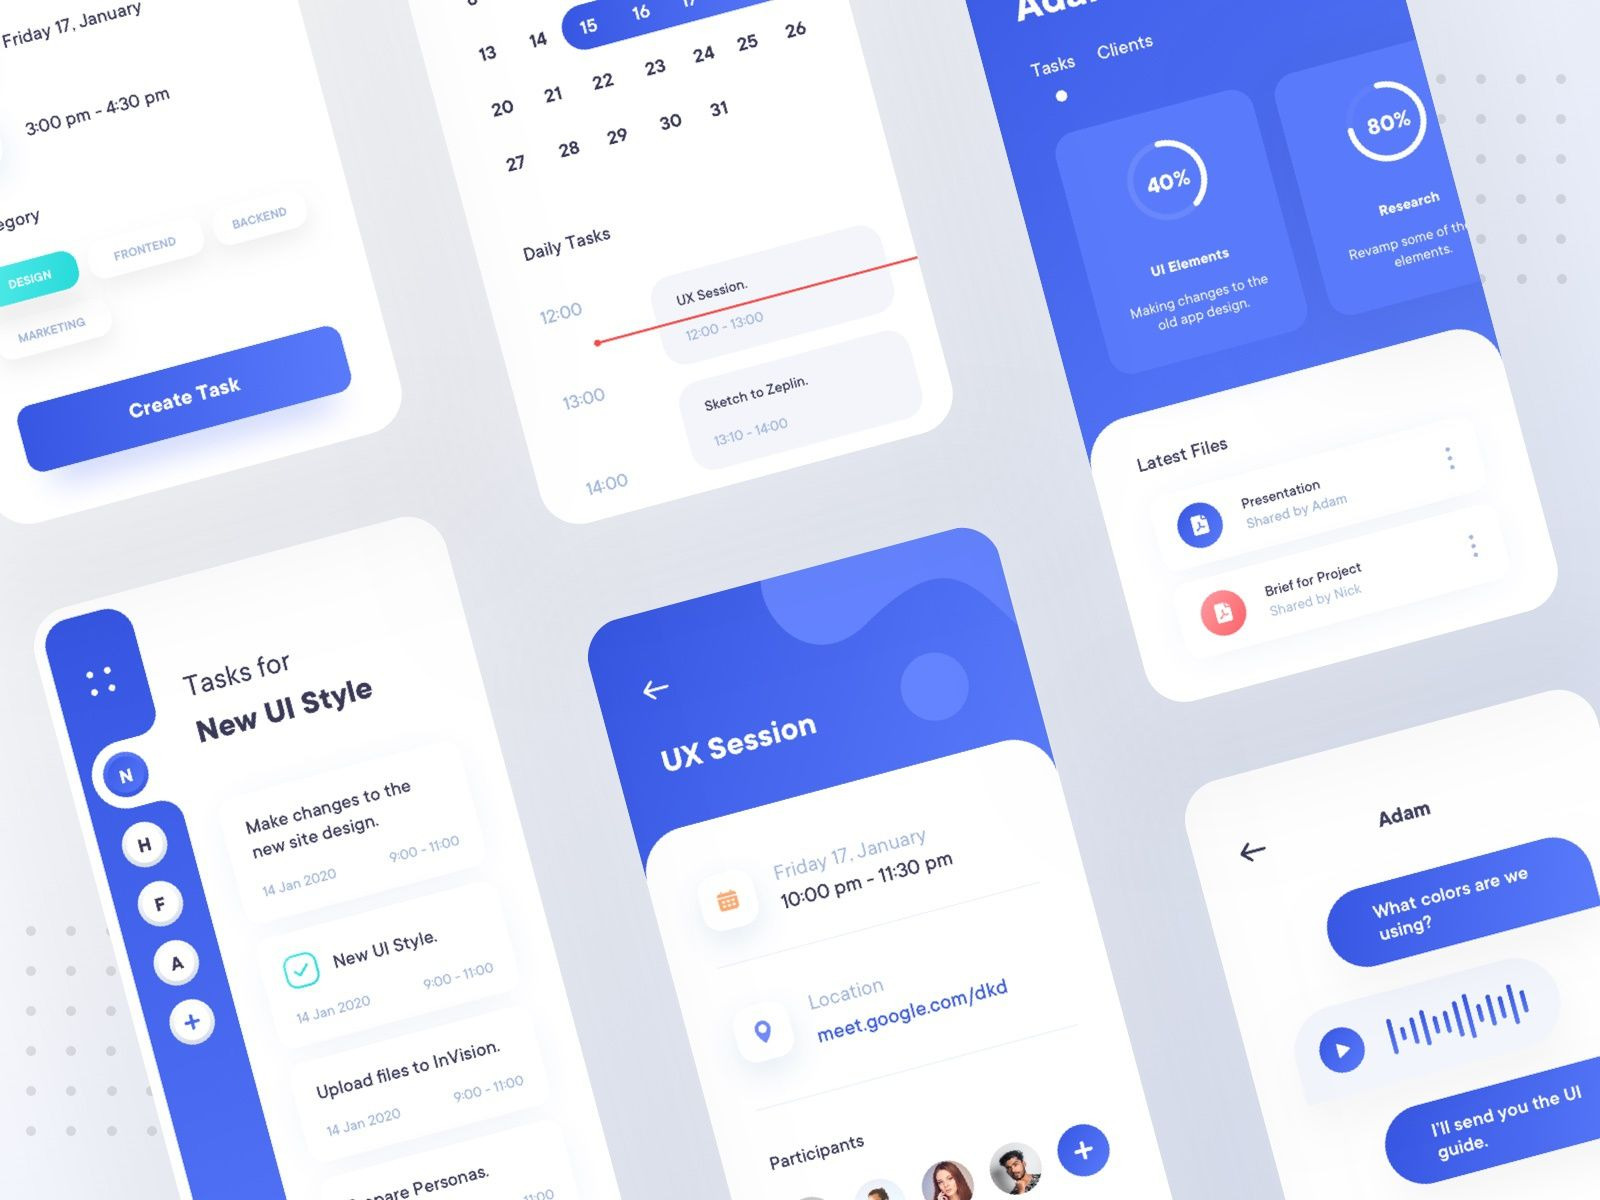 Task Management App Concept In 2020 Task Management App App Design Inspiration App Design Layout